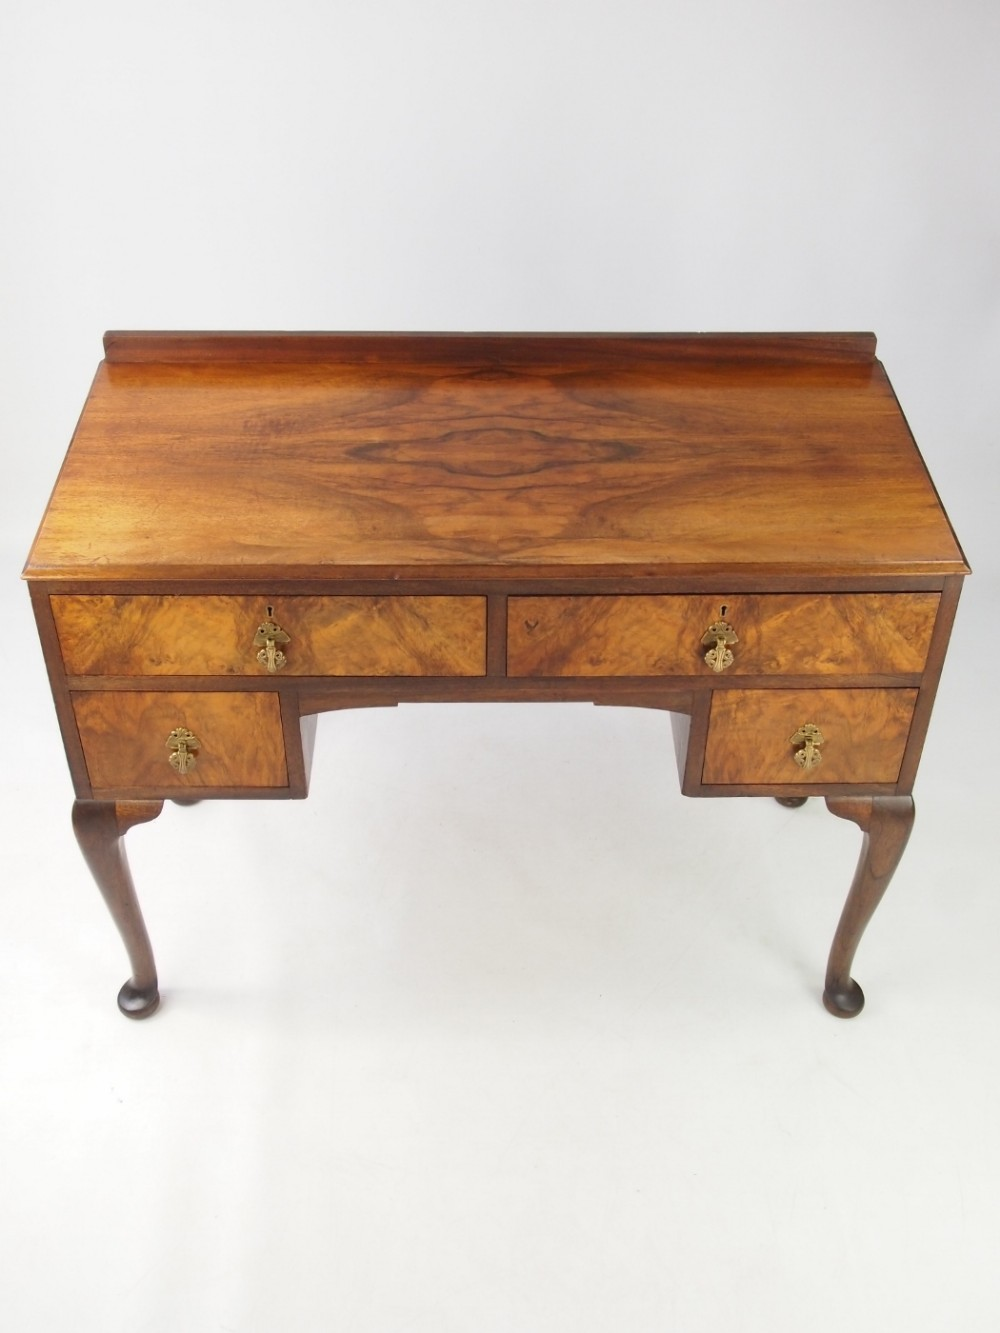 Small Art Deco Walnut Desk 463243